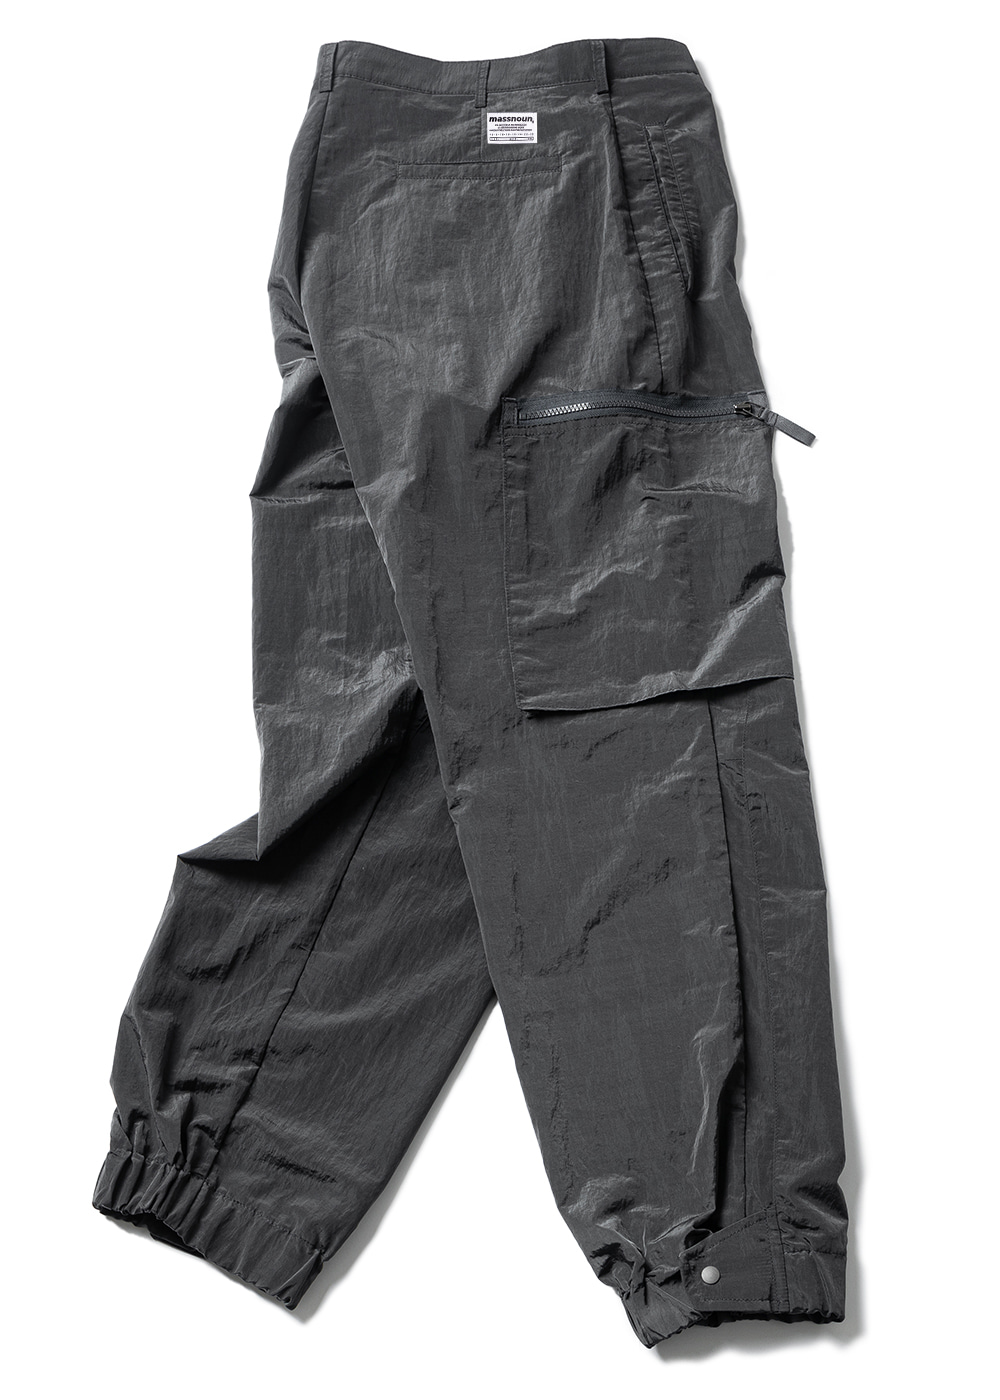 NYLON METAL SIGNATURE CARGO PANTS MUZTP001-DG